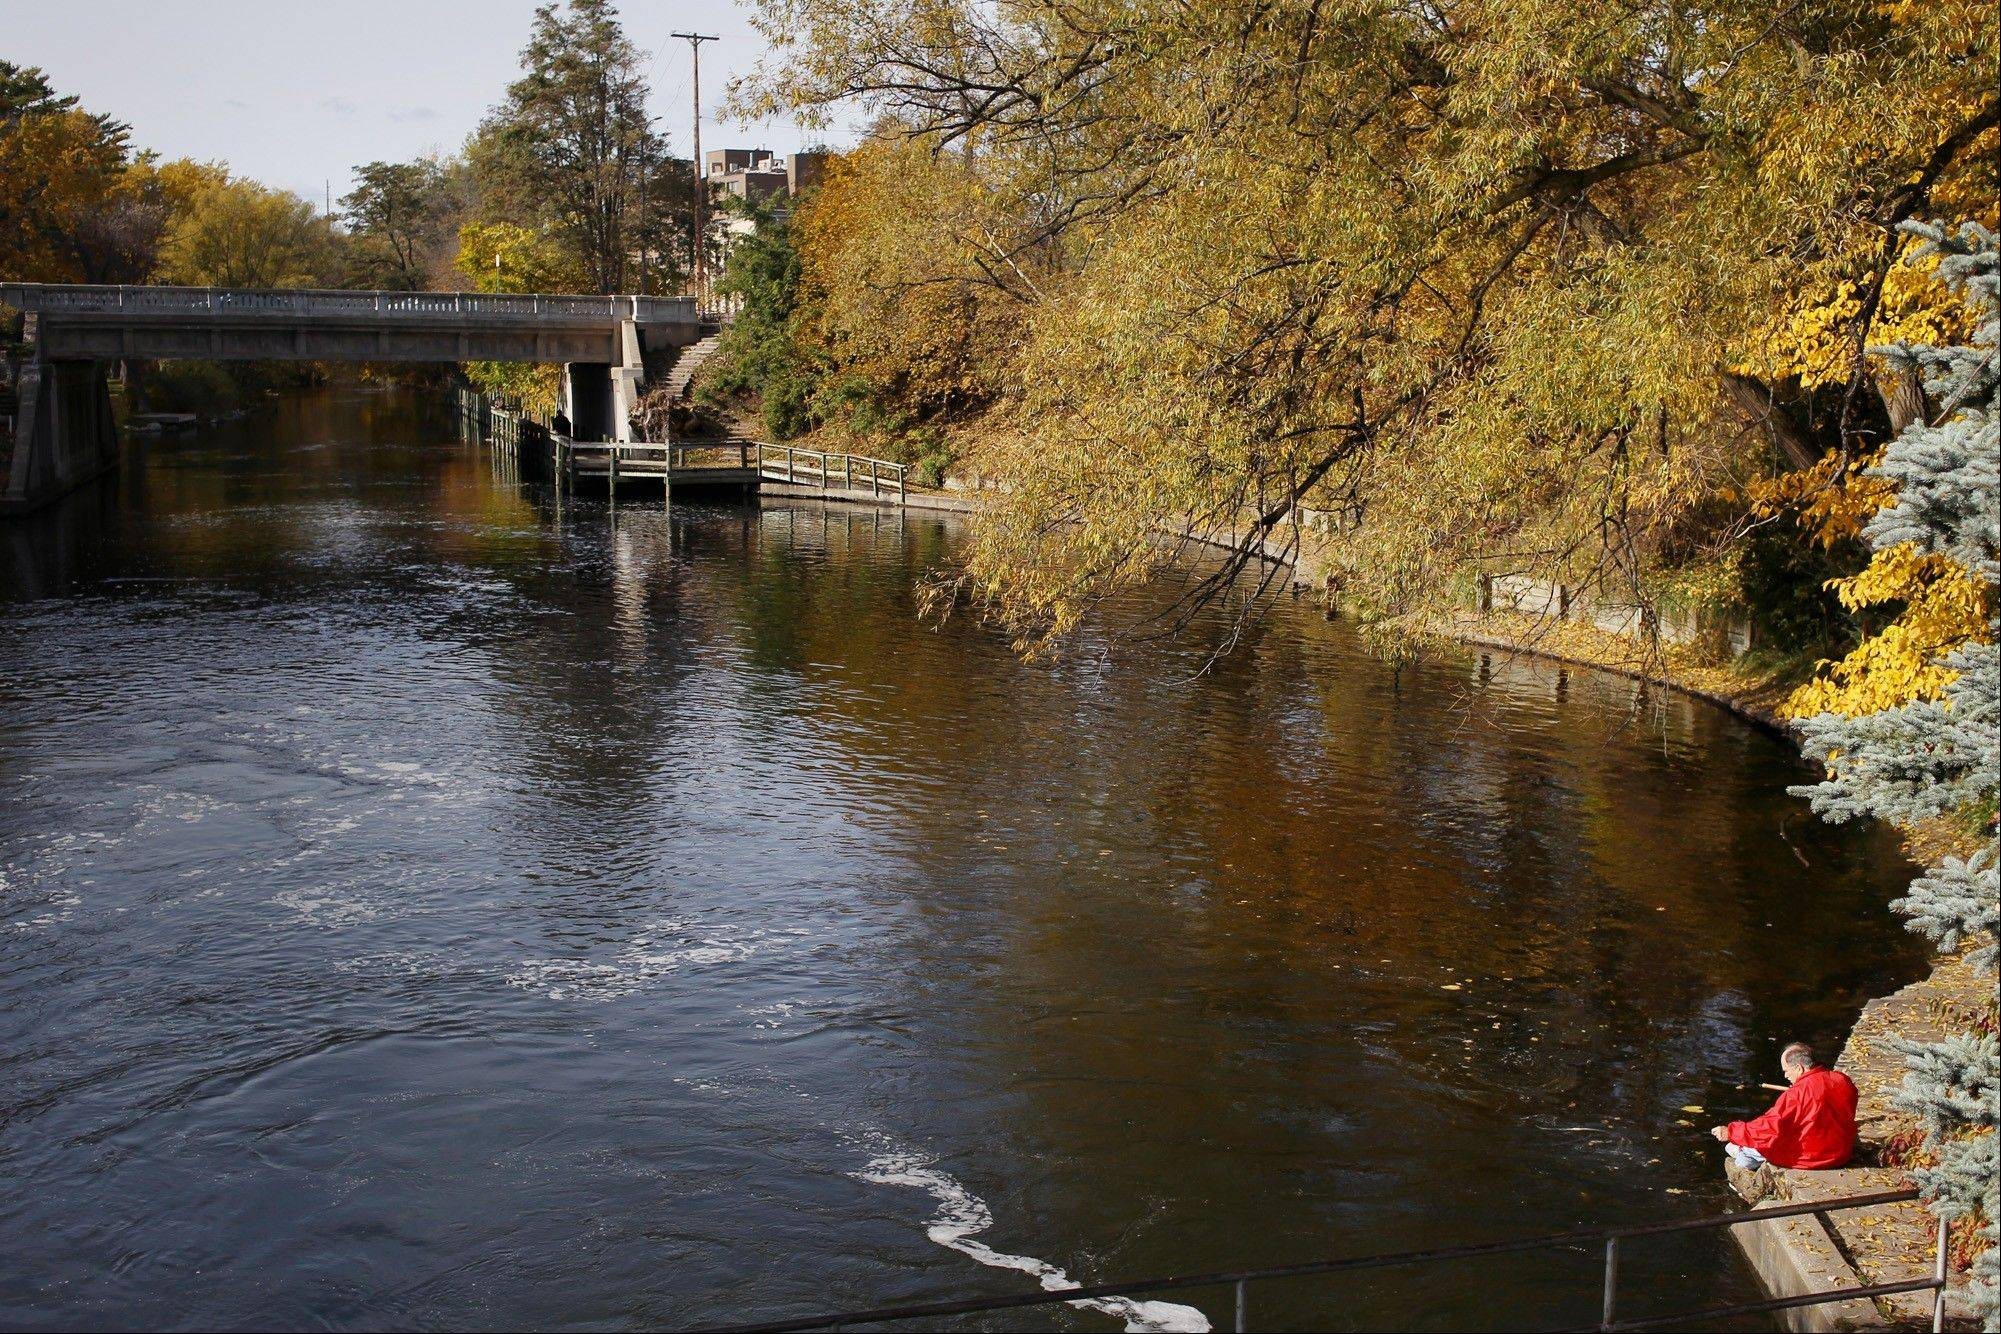 A fisherman sits near the Boardman River dam in Traverse City, Mich. The Boardman River, which meanders through town before flowing into the lake.